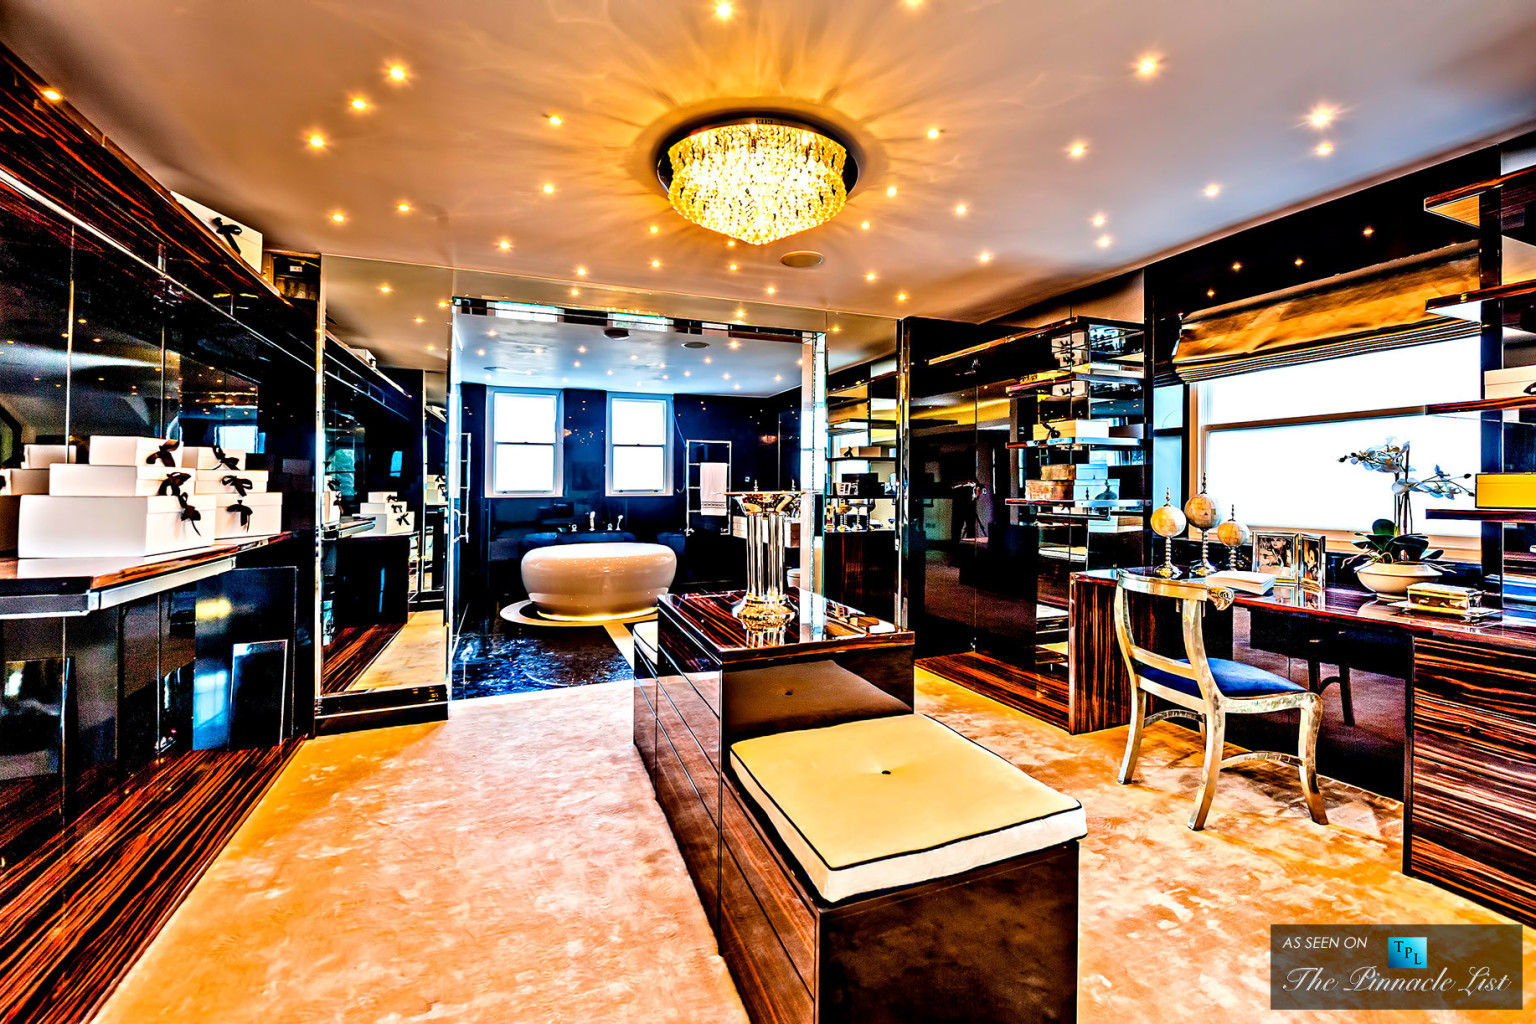 This Luxury London Flat Has The Dressing Room Of Your Dreams (PHOTOS) |  HuffPost